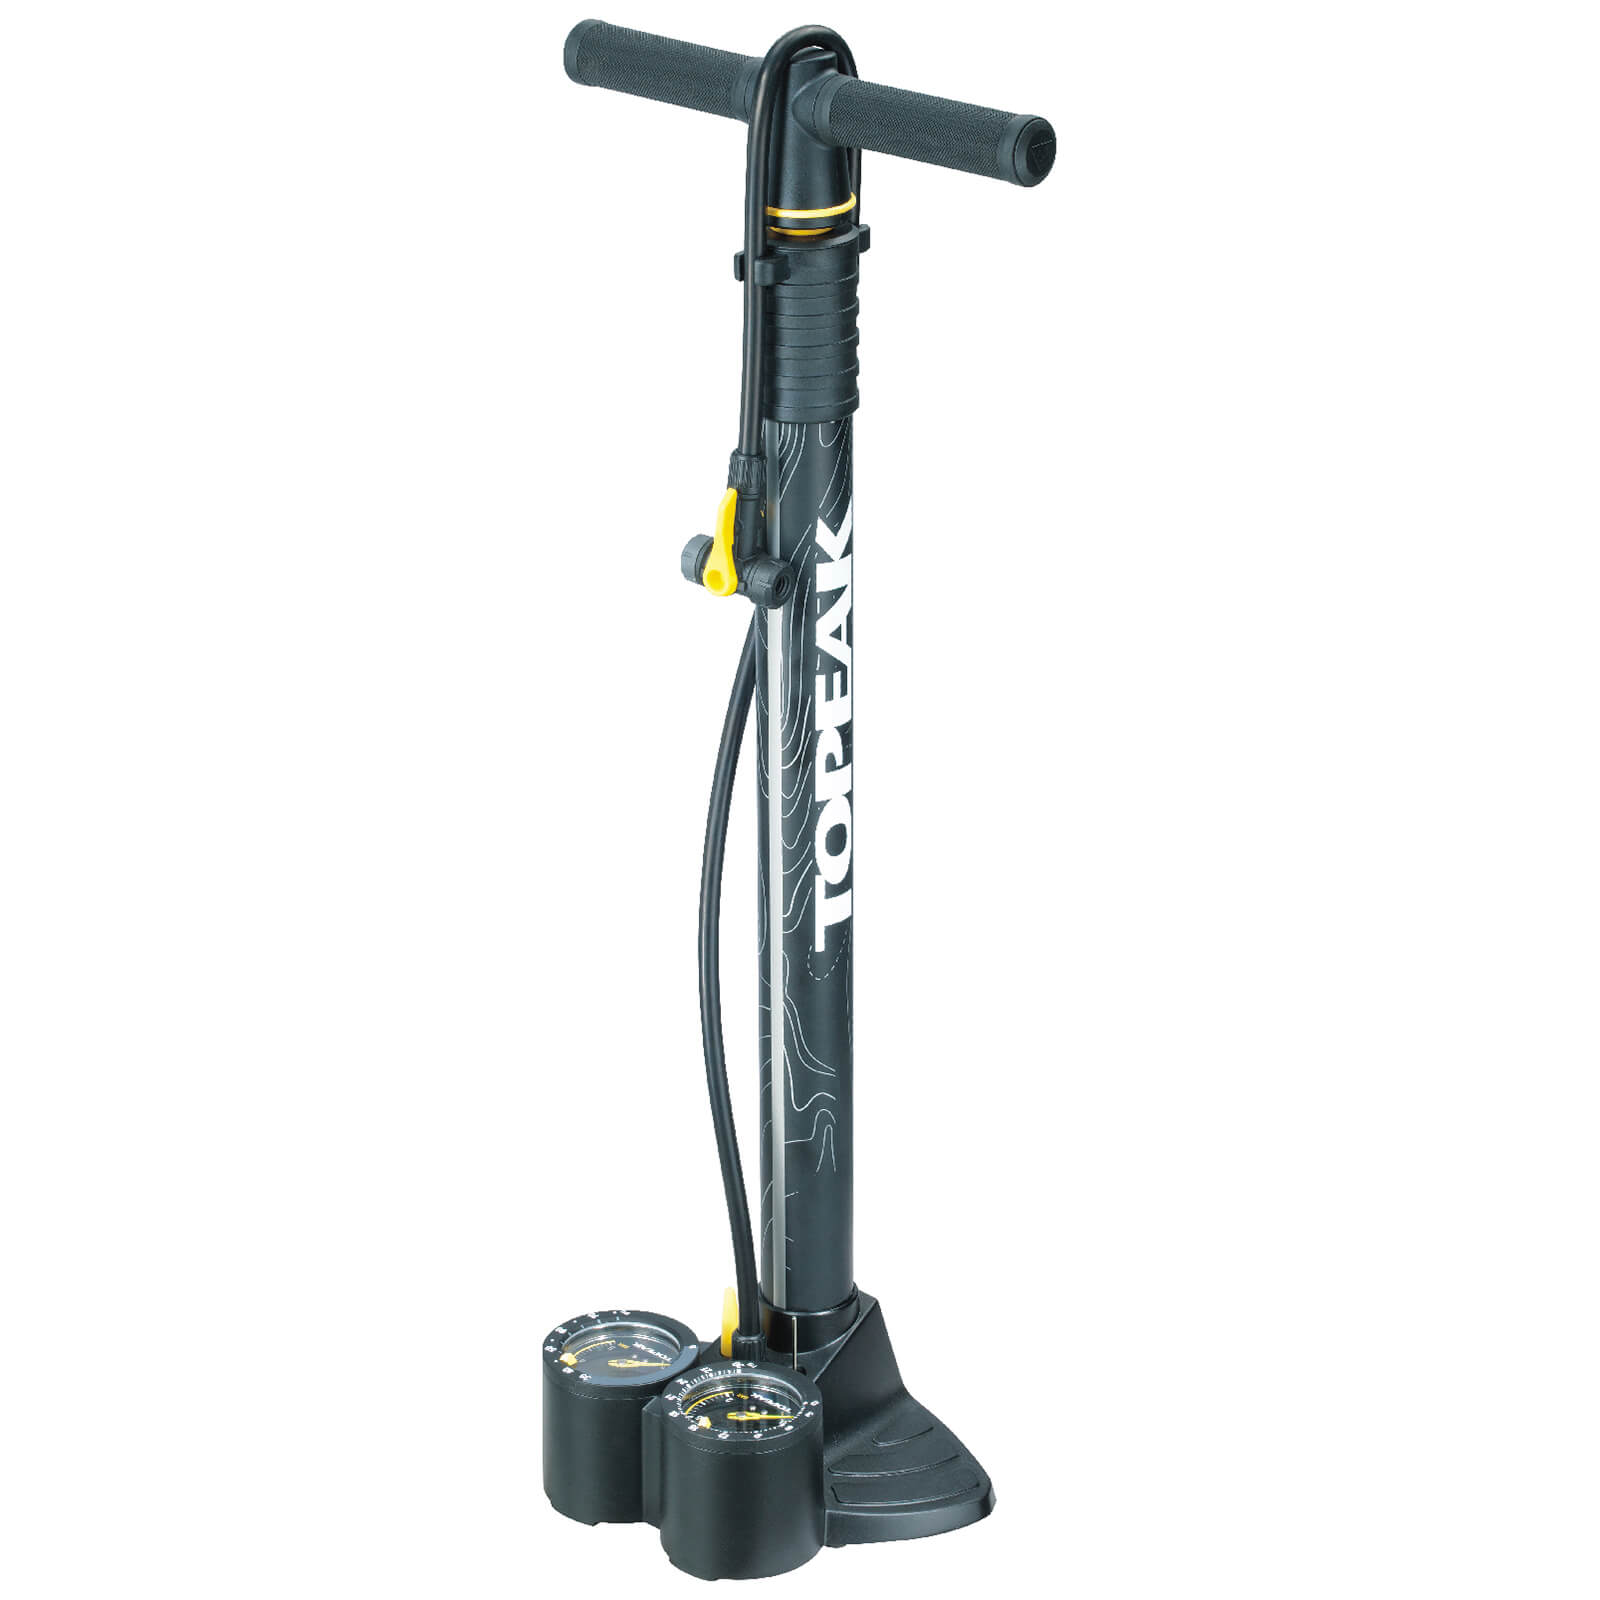 Topeak Joe Black Dualie Pump